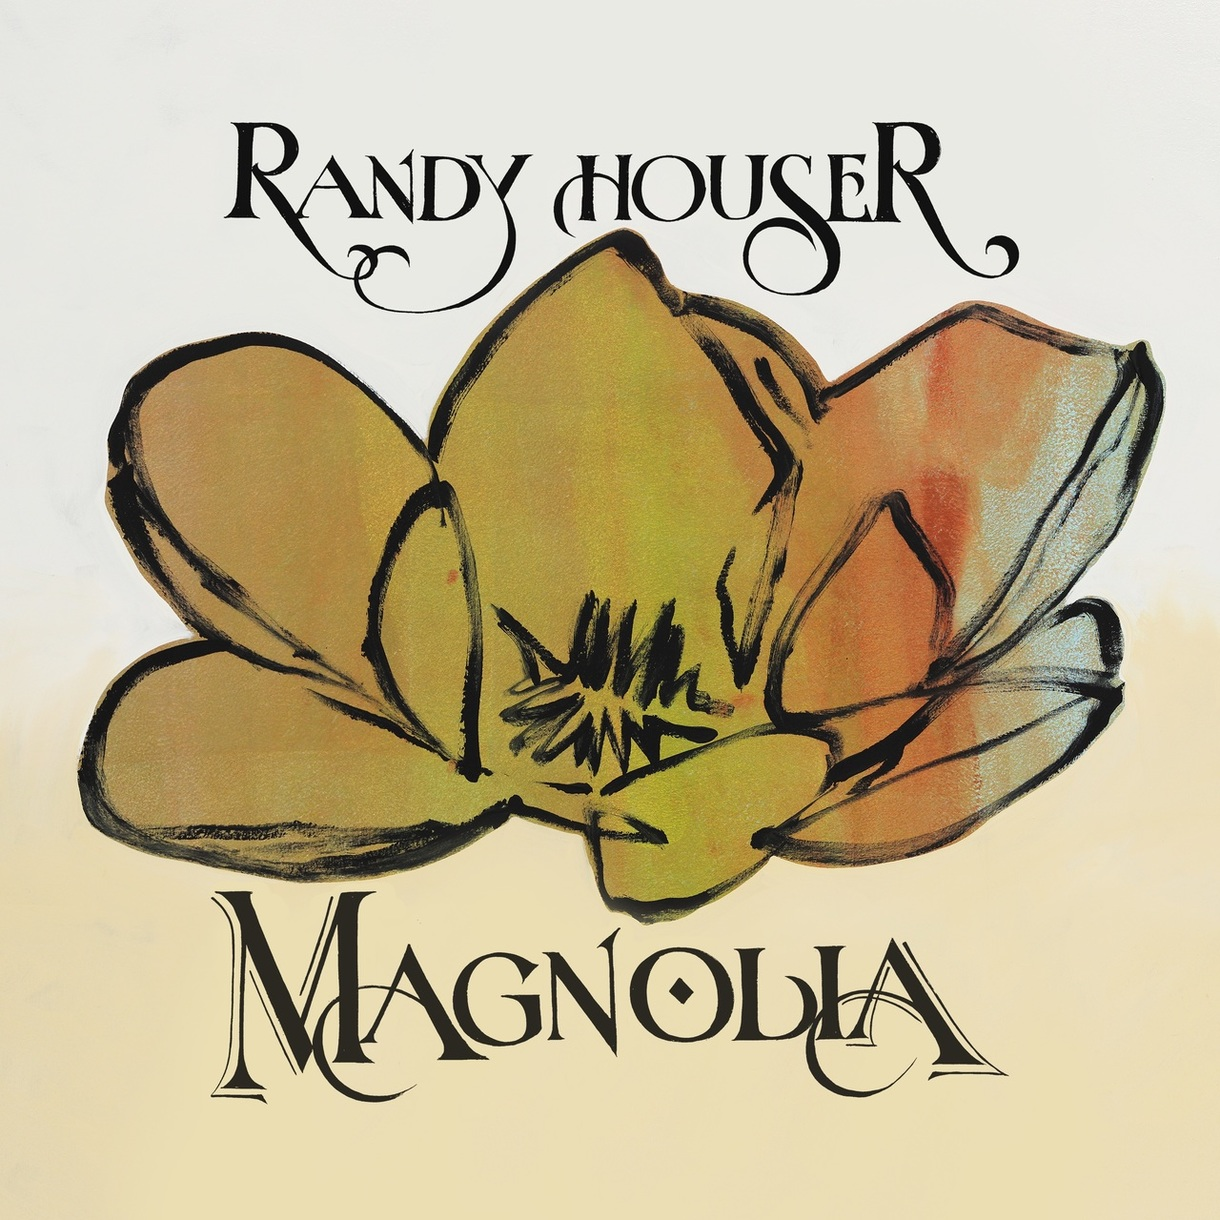 "NEW ALBUM MAGNOLIA LAUDED AS ""HOUSER AT HIS BEST"""